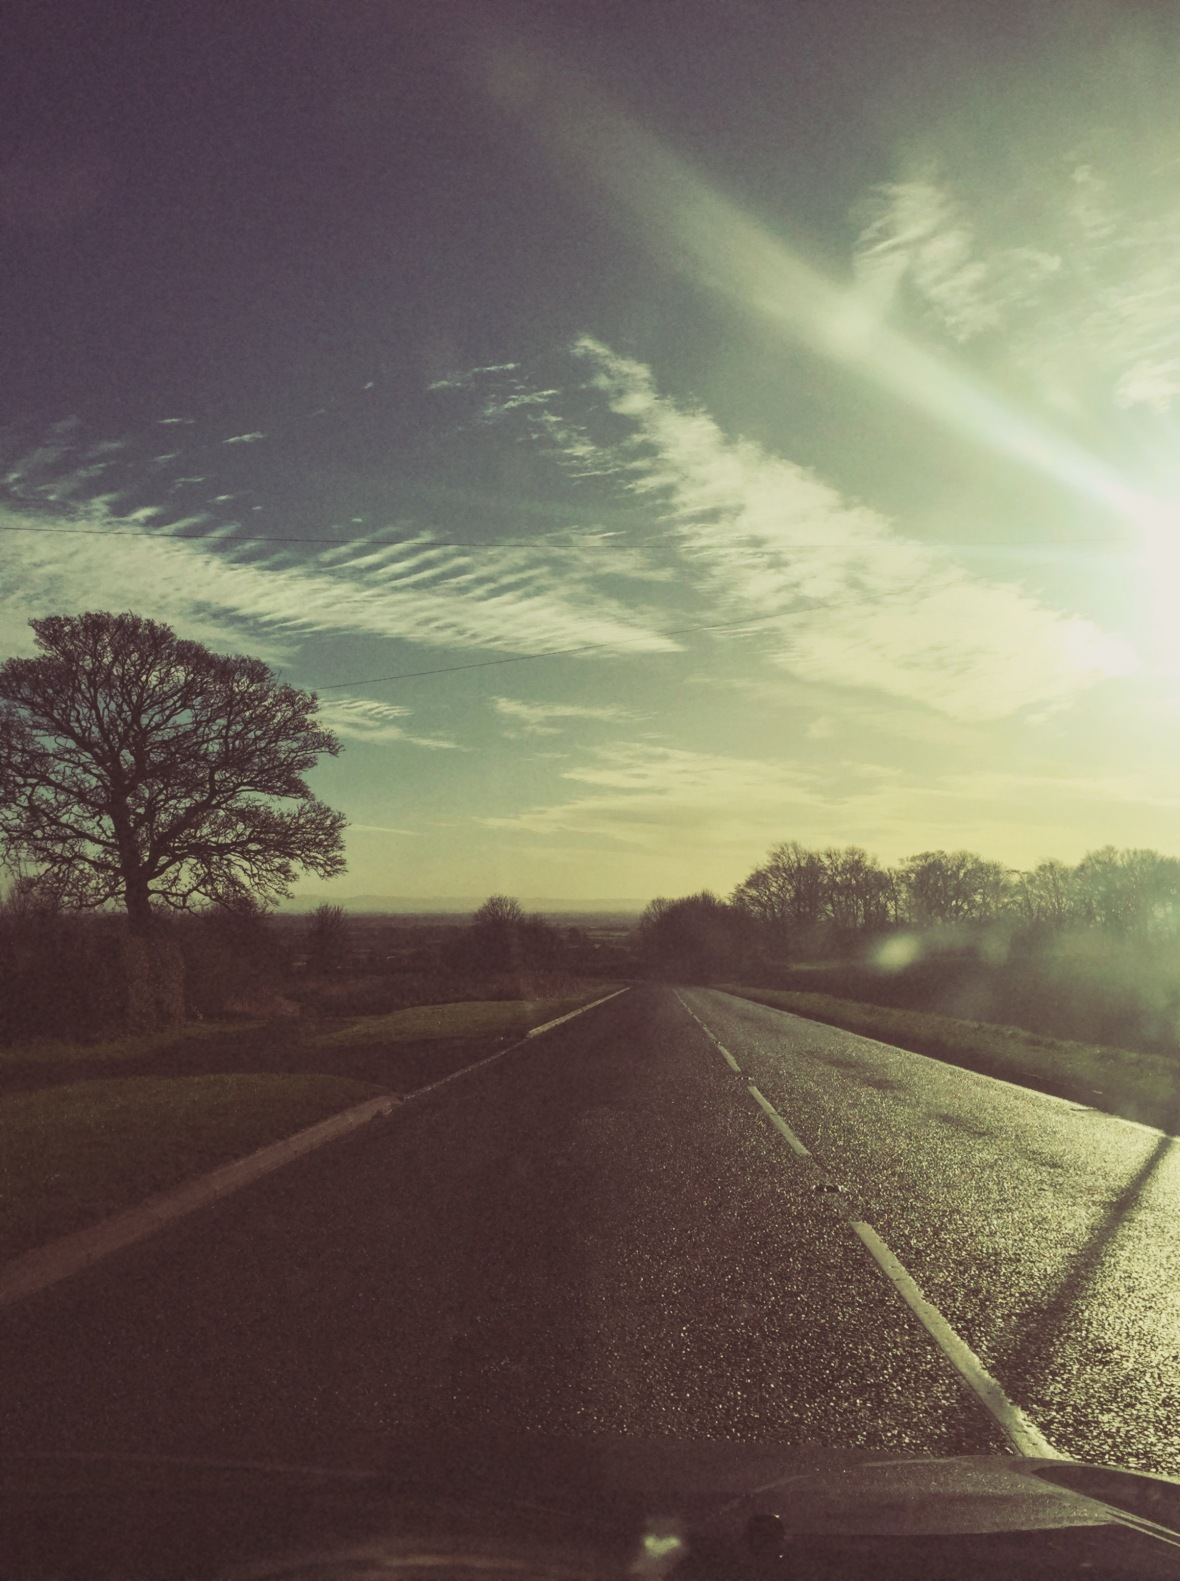 on the way back to the A1